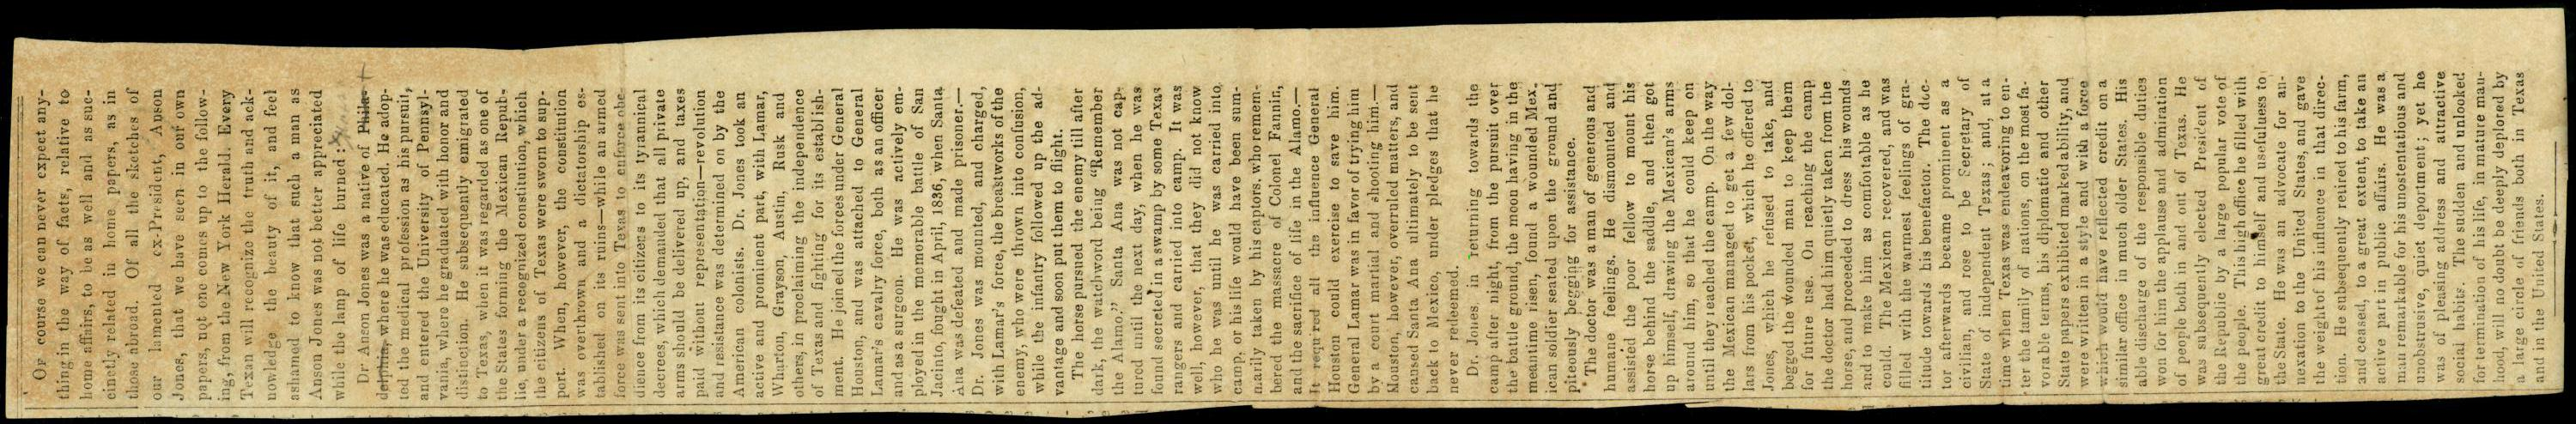 Anson Jones. Obituary. 1858                                                                                                      [Sequence #]: 1 of 1